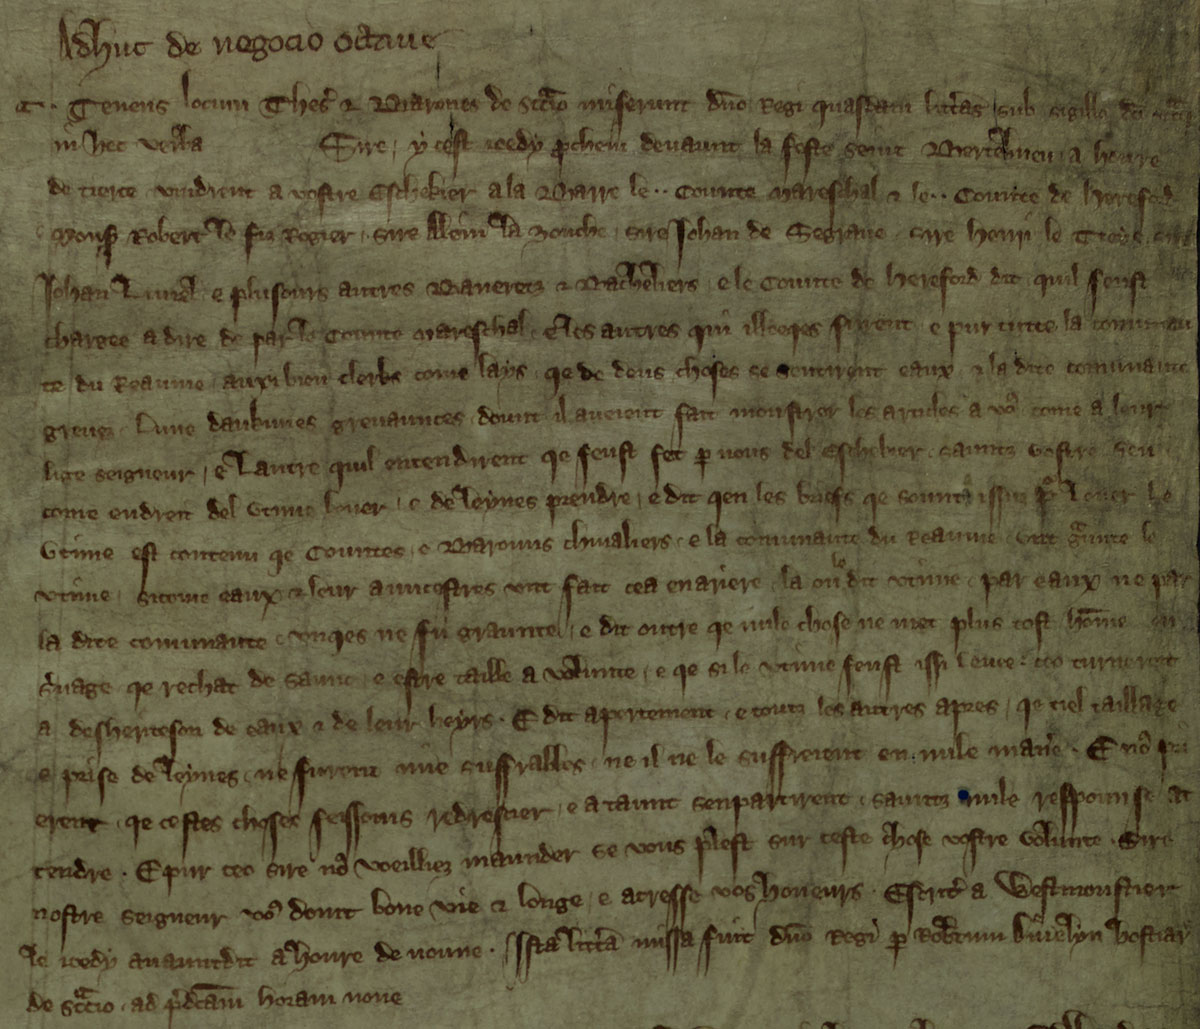 Statement by Roger Bigod and Henry de Bohun, E159-70)